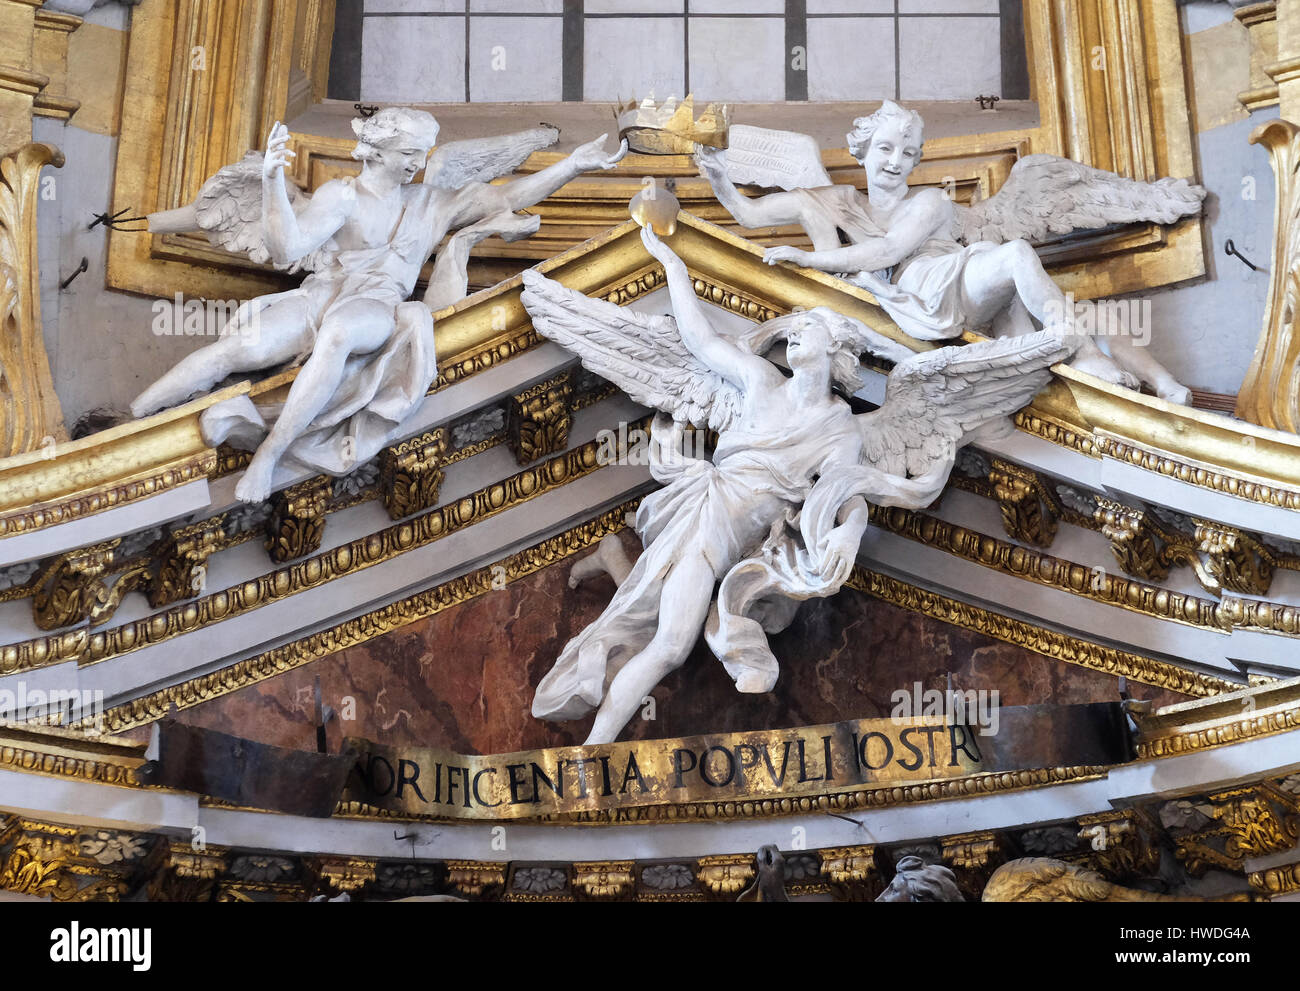 Angels in Basilica dei Santi Ambrogio e Carlo al Corso, Rome, Italy on September 03, 2016. Stock Photo